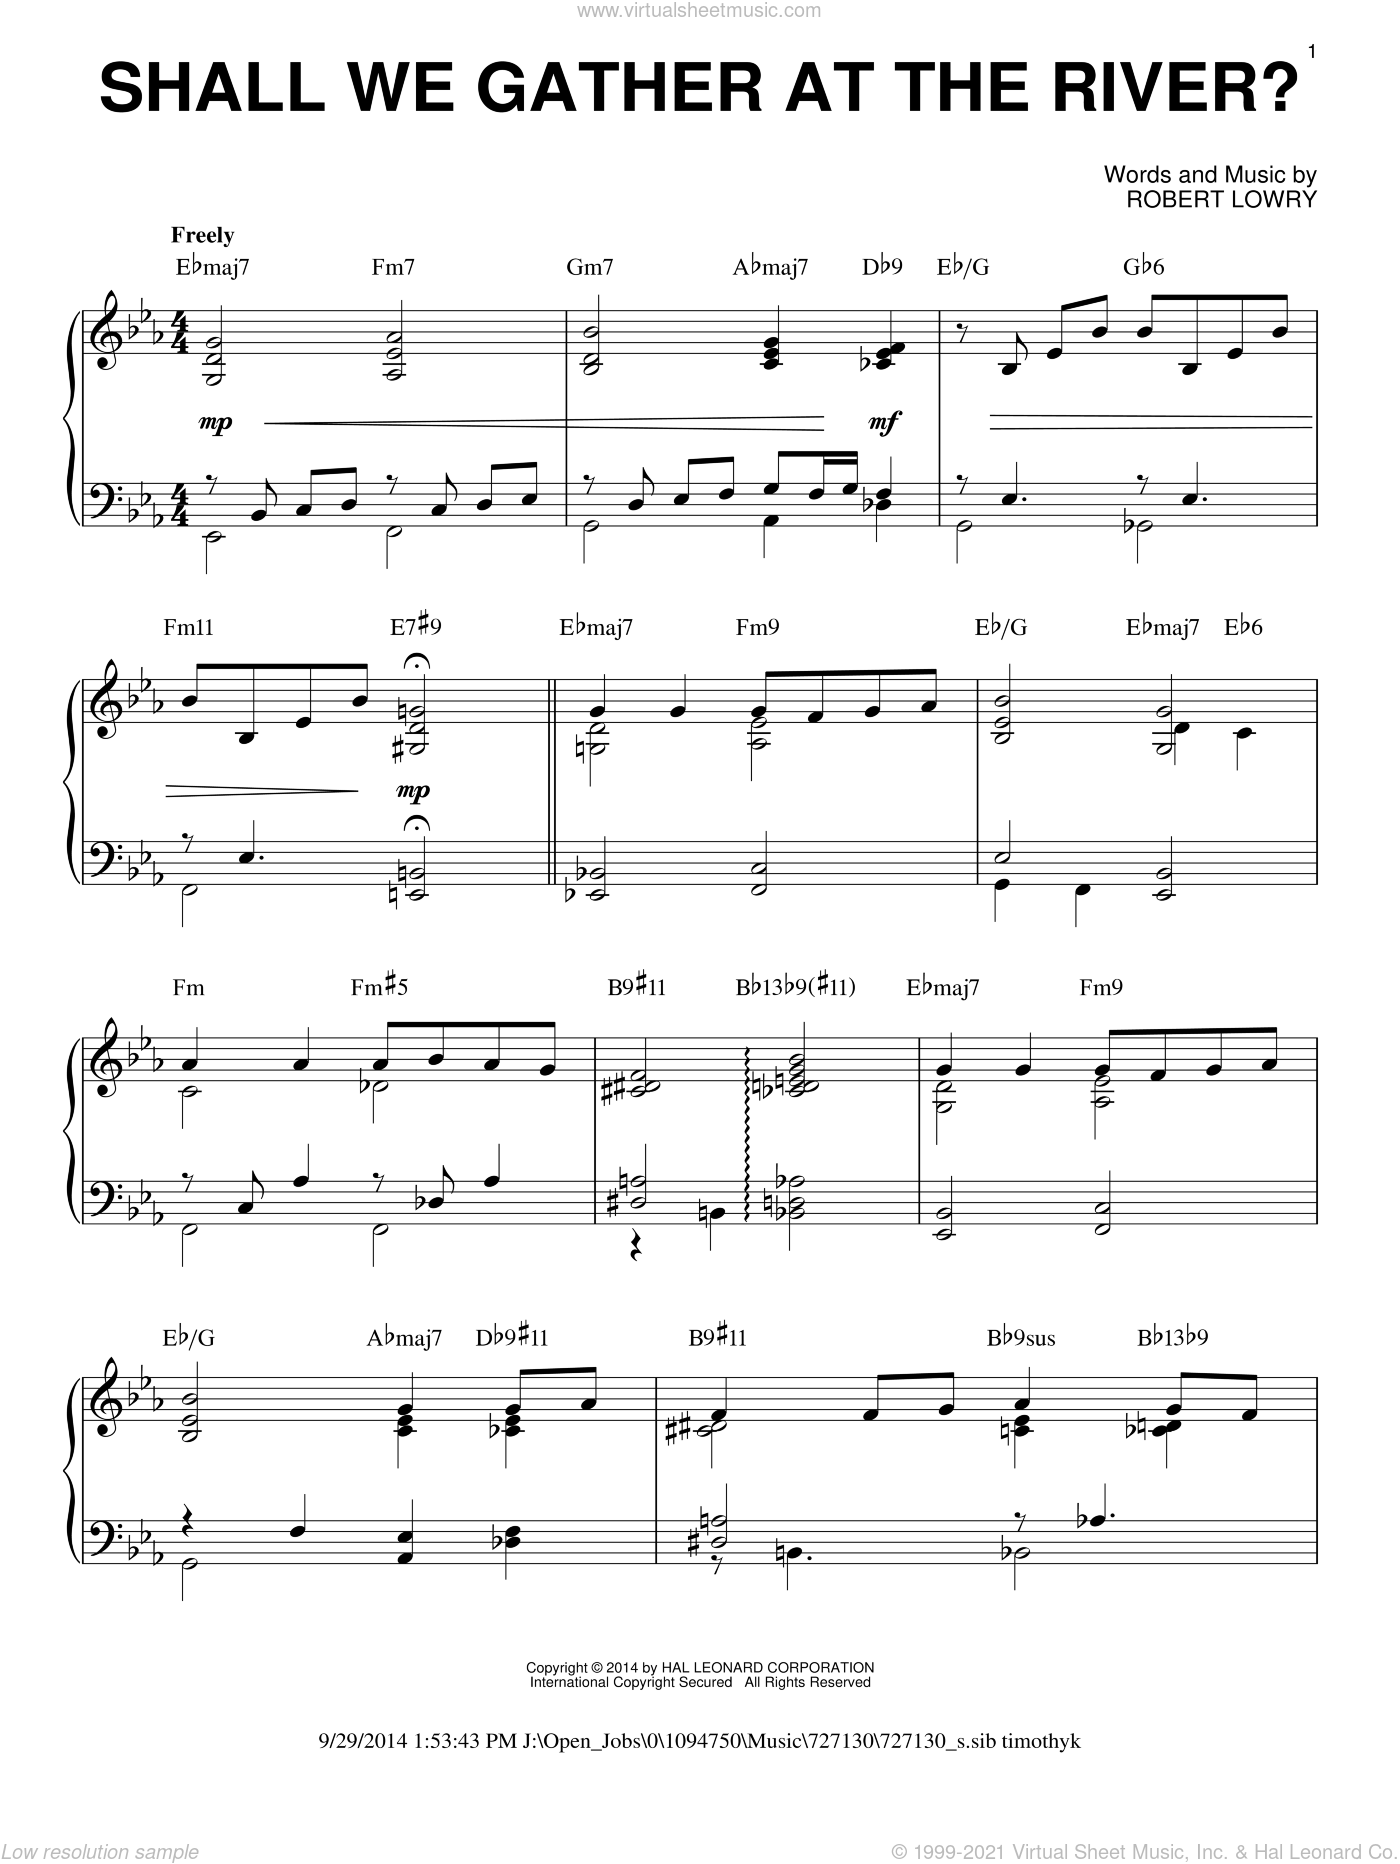 Shall We Gather At The River?, (intermediate) sheet music for piano solo by Robert Lowry, intermediate skill level